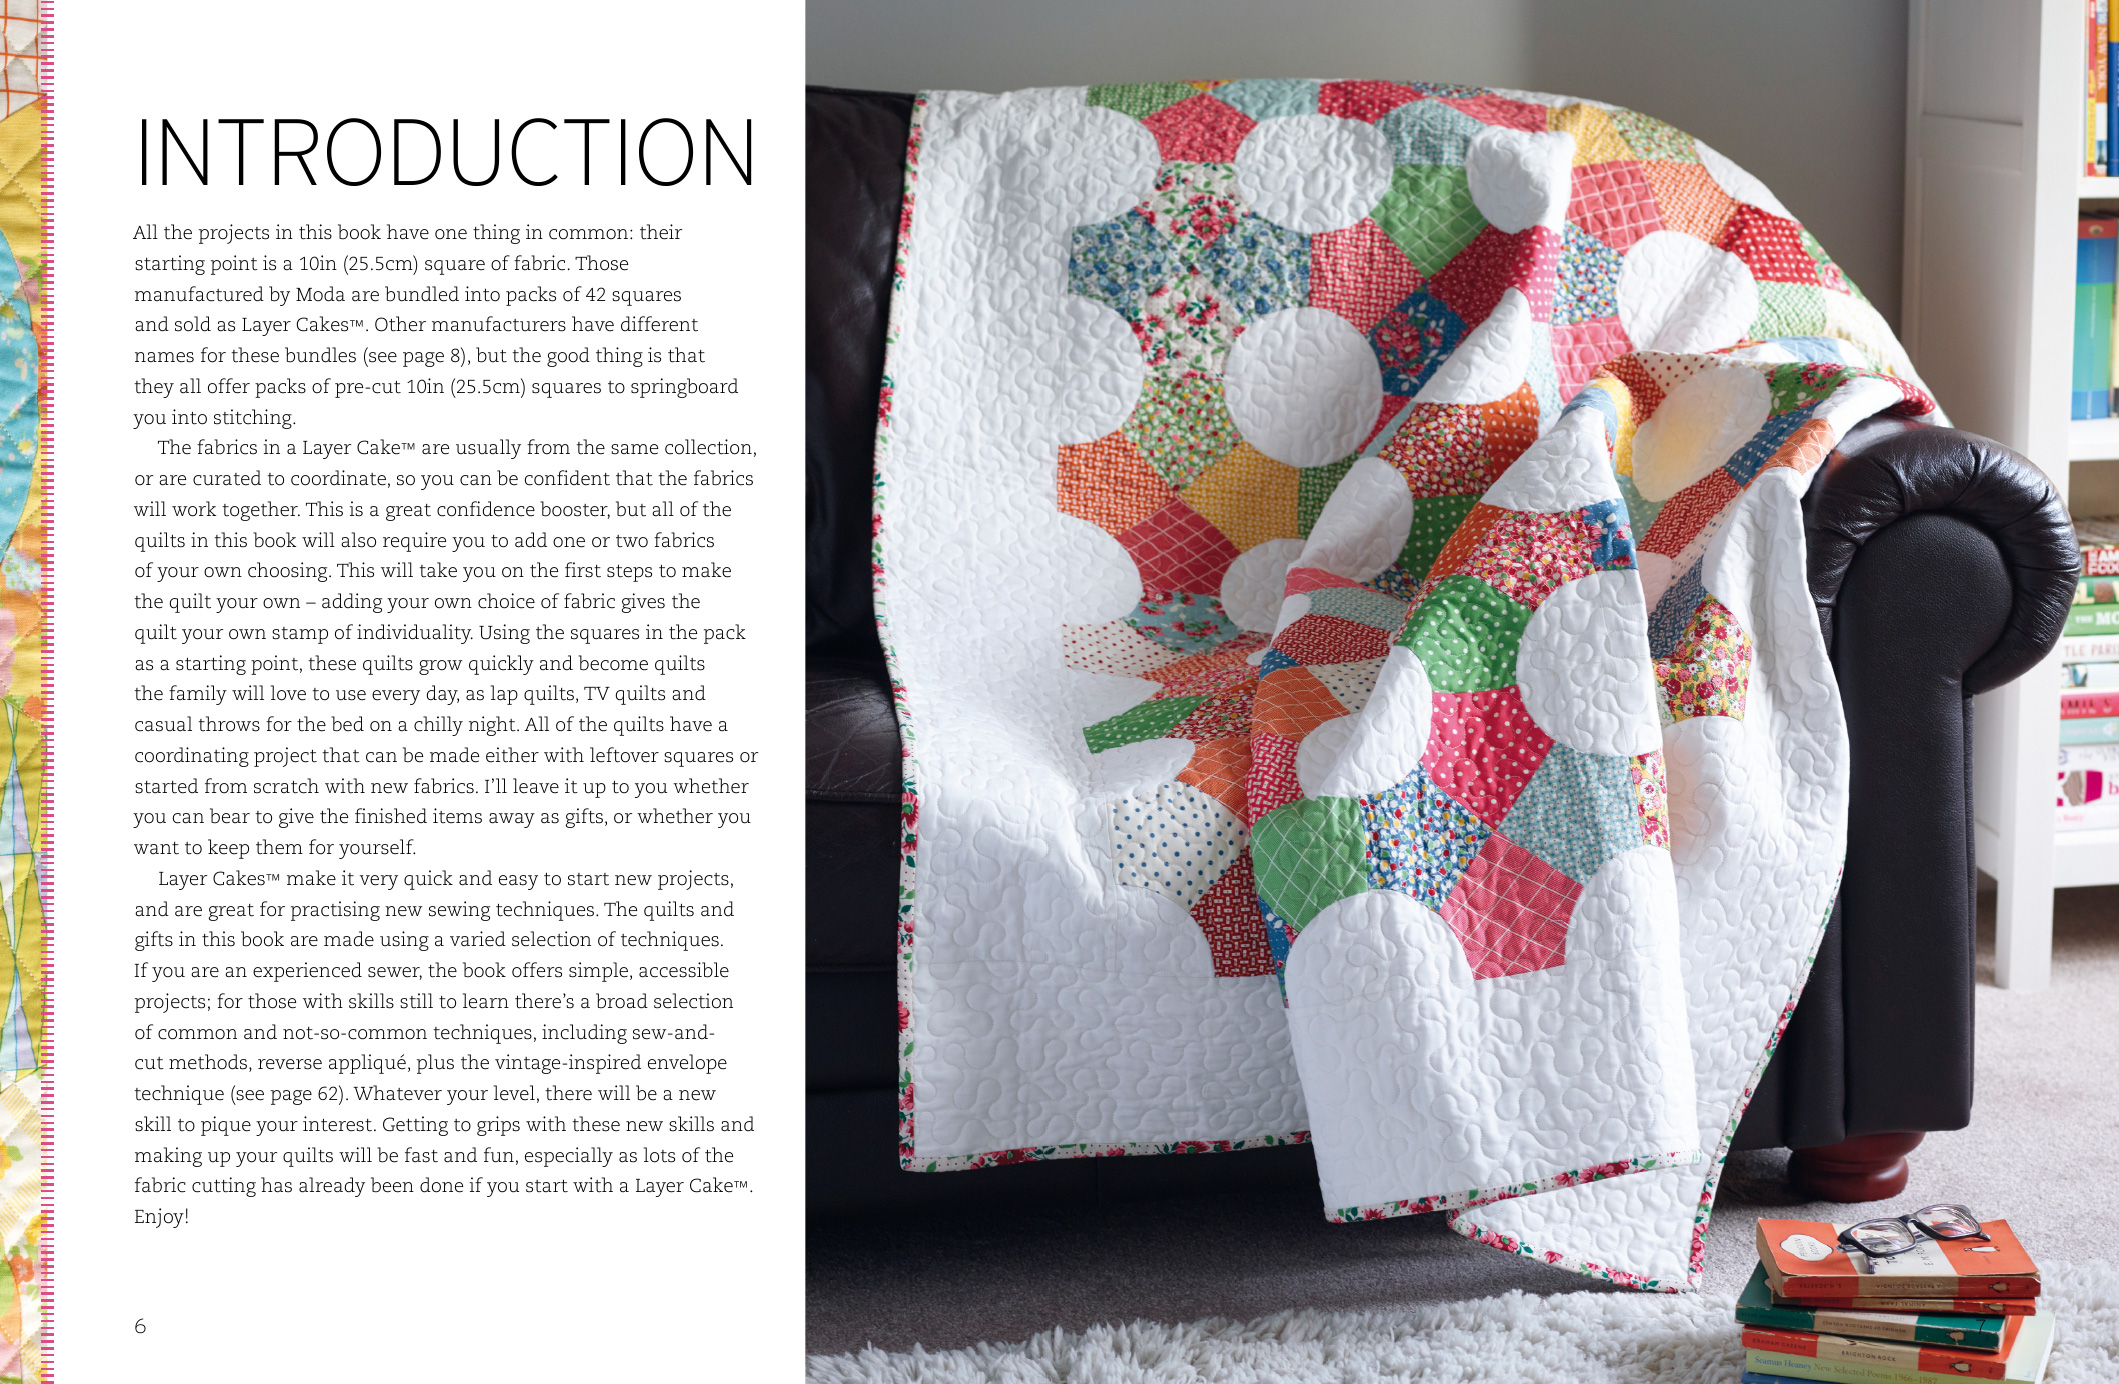 Sew-Layer-Cake-Quilts-and-Gifts-6-7